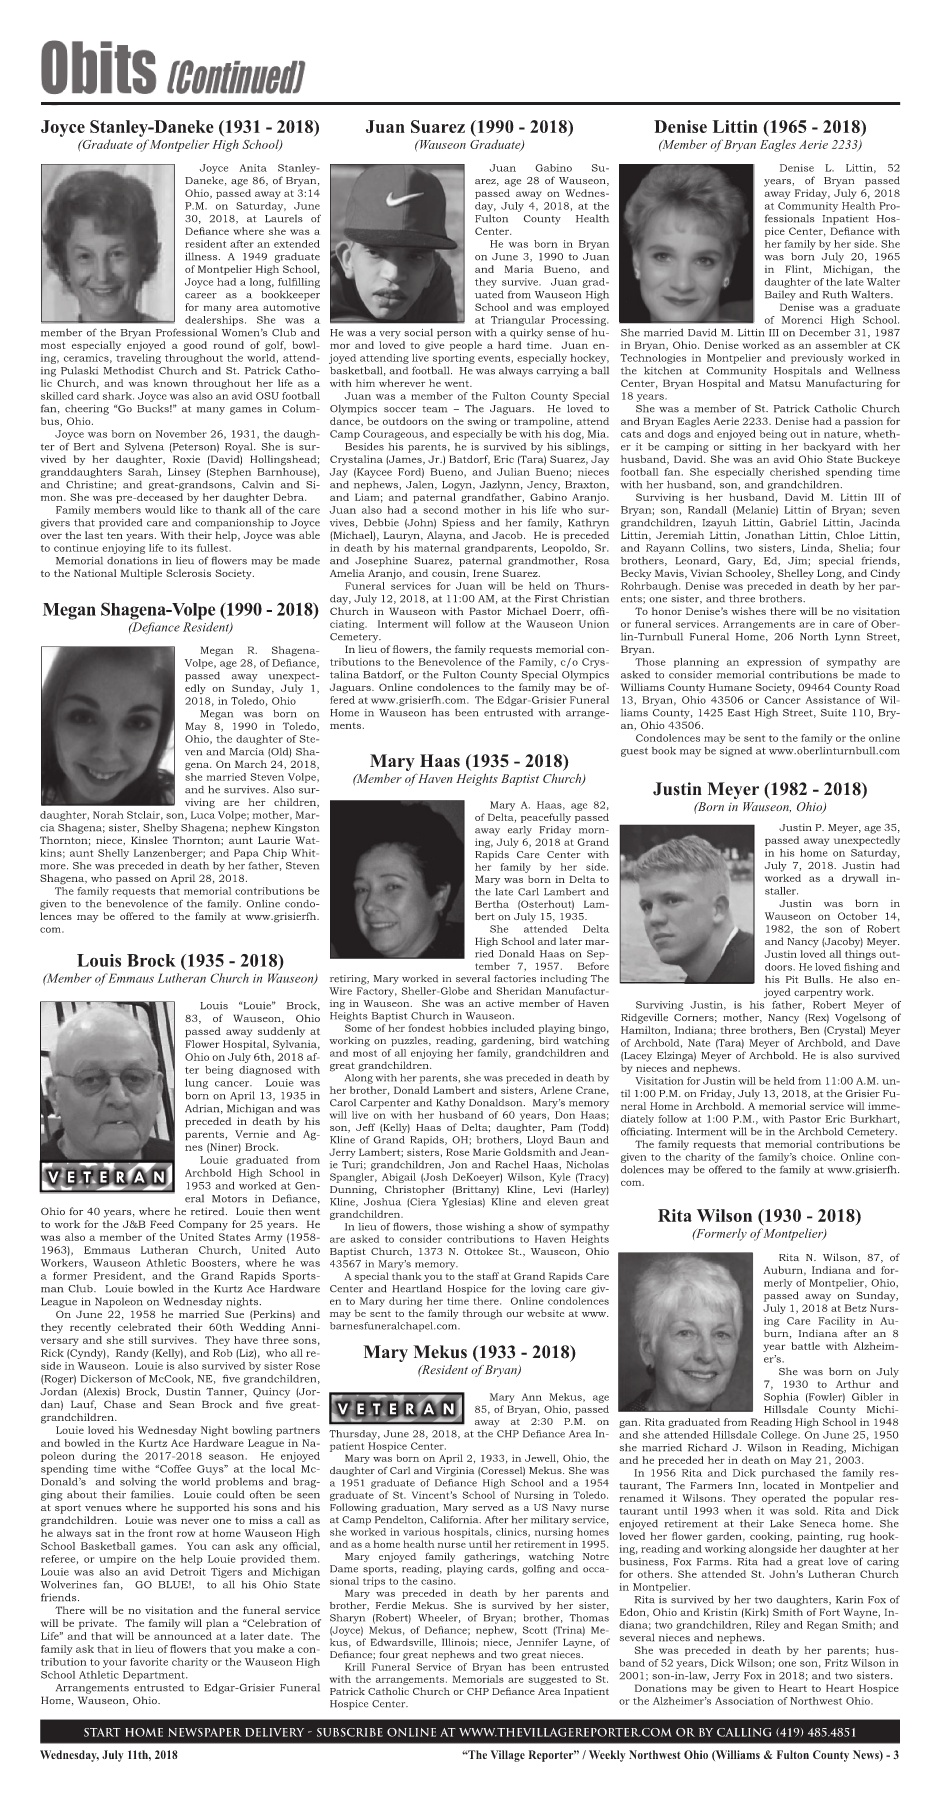 The Village Reporter - July 11th, 2018 Pages 1 - 32 - Text